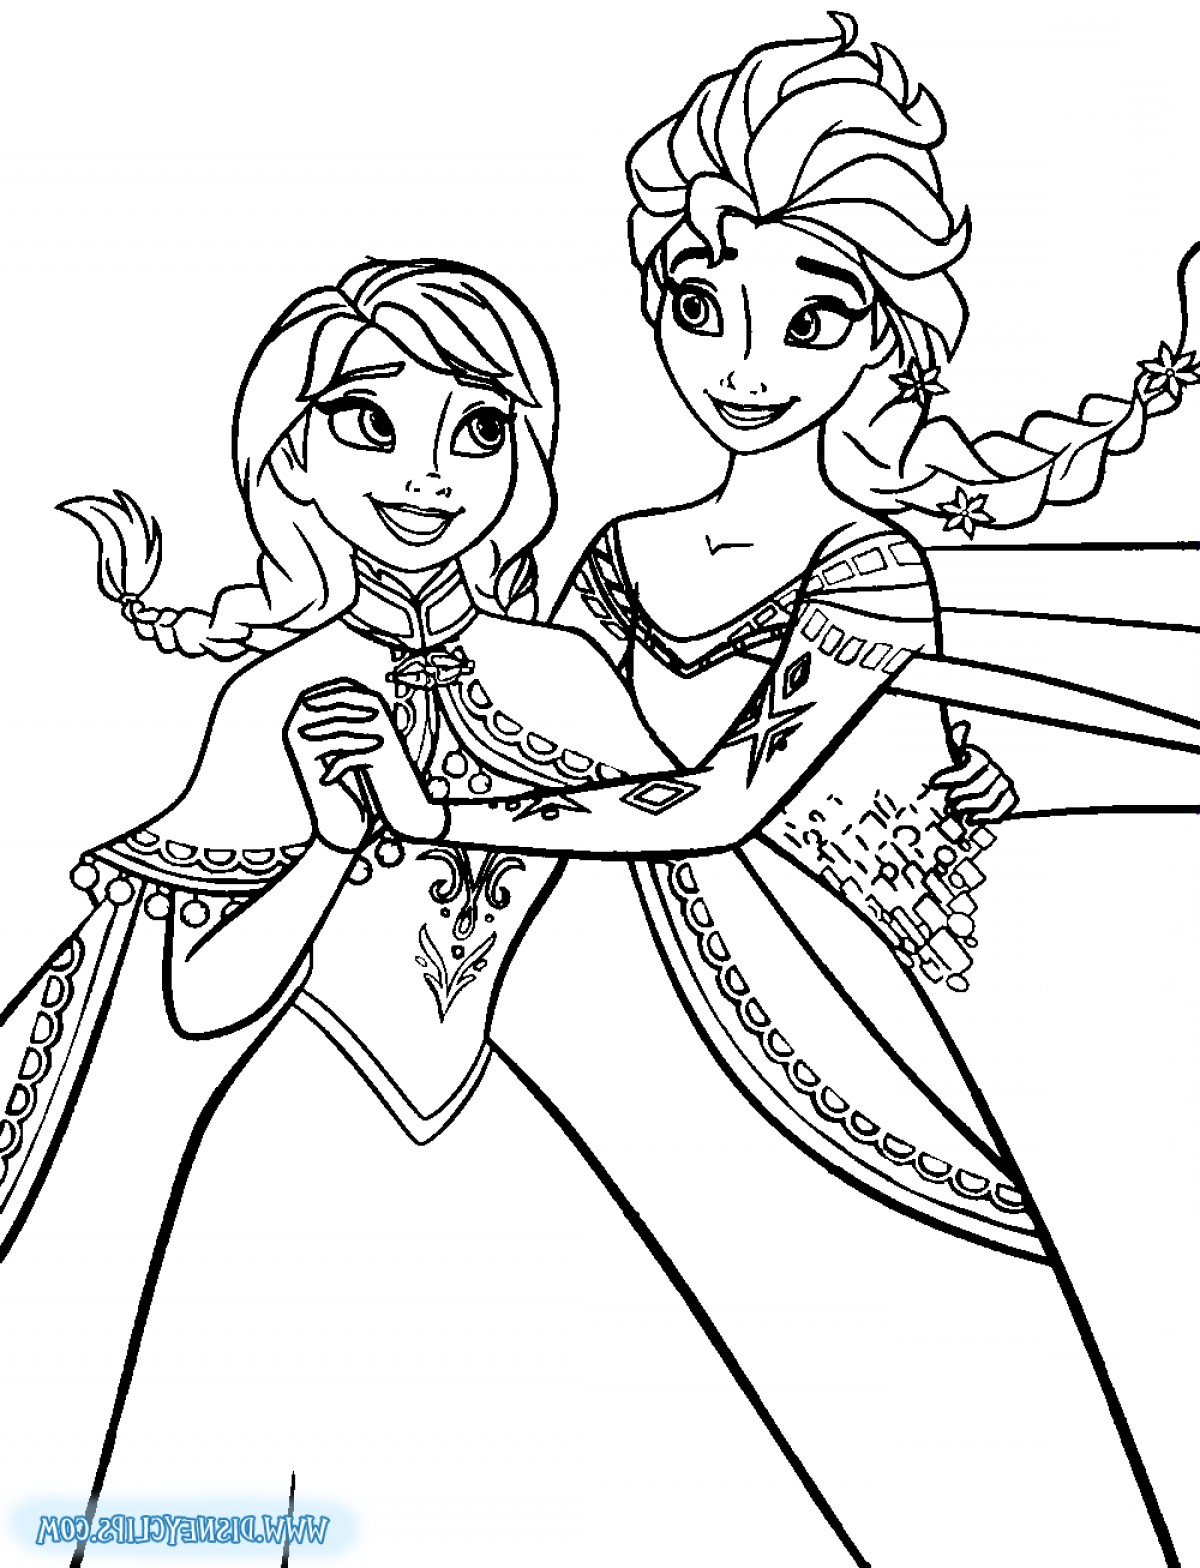 Frozen clipart coloring, Frozen coloring Transparent FREE.